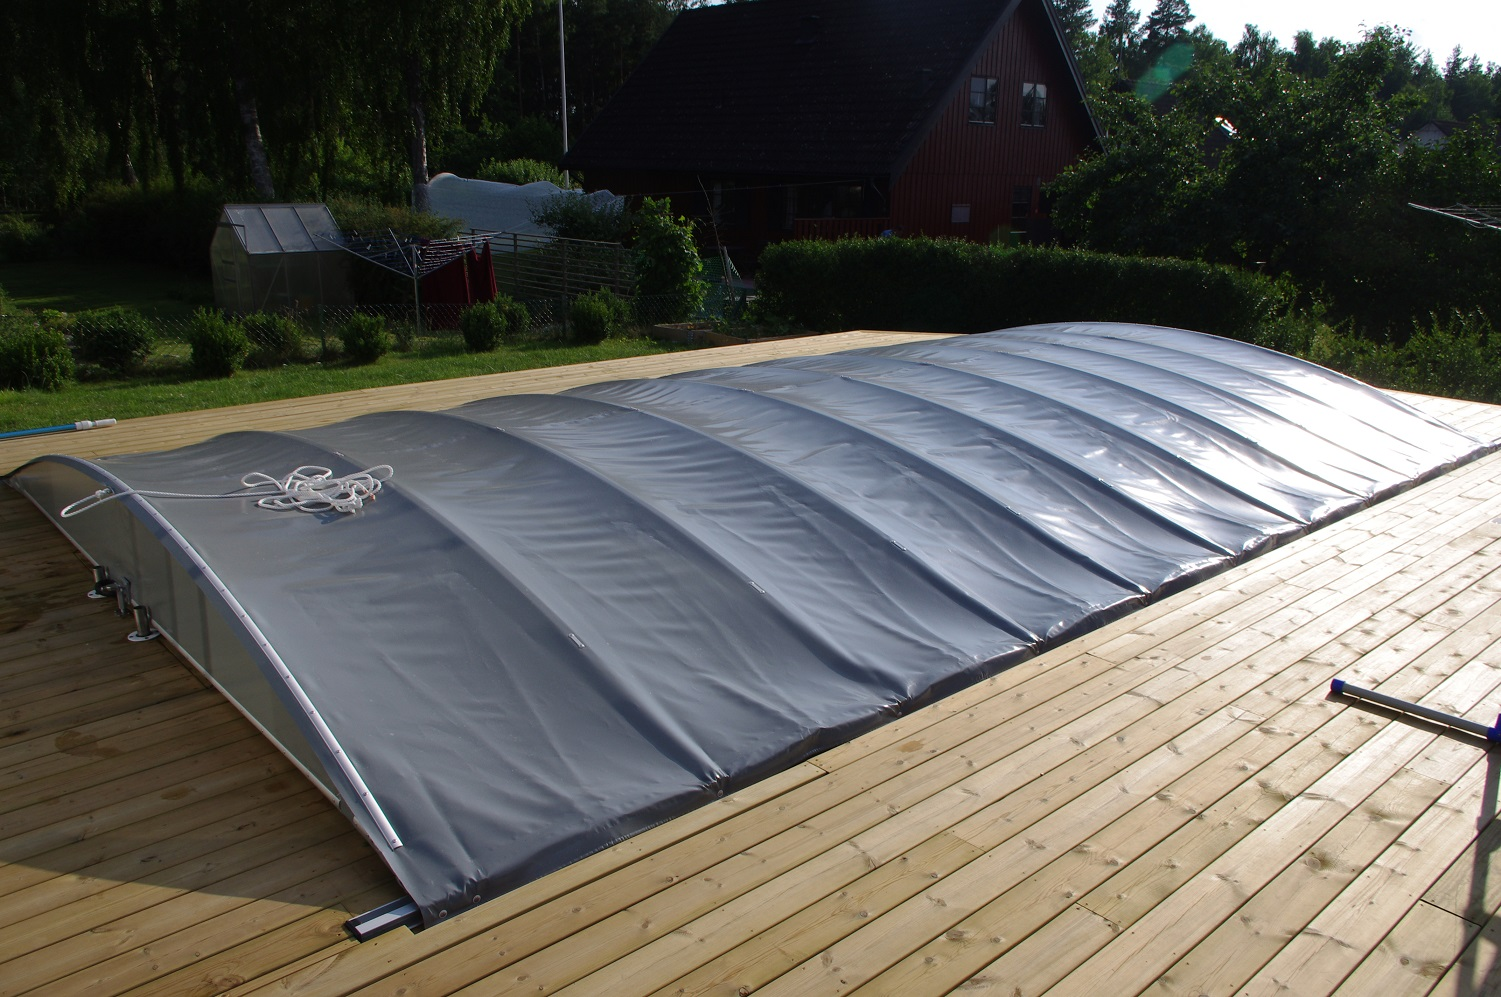 Pool covering